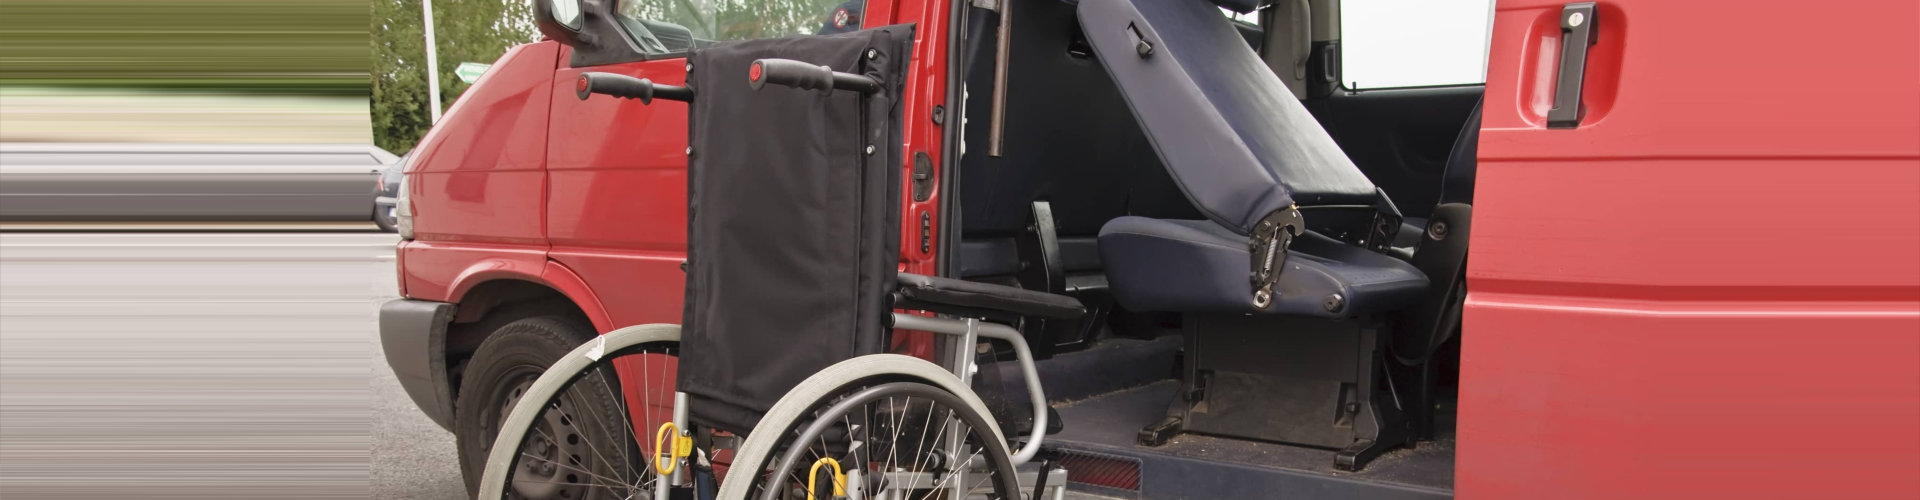 red van and a wheelchair